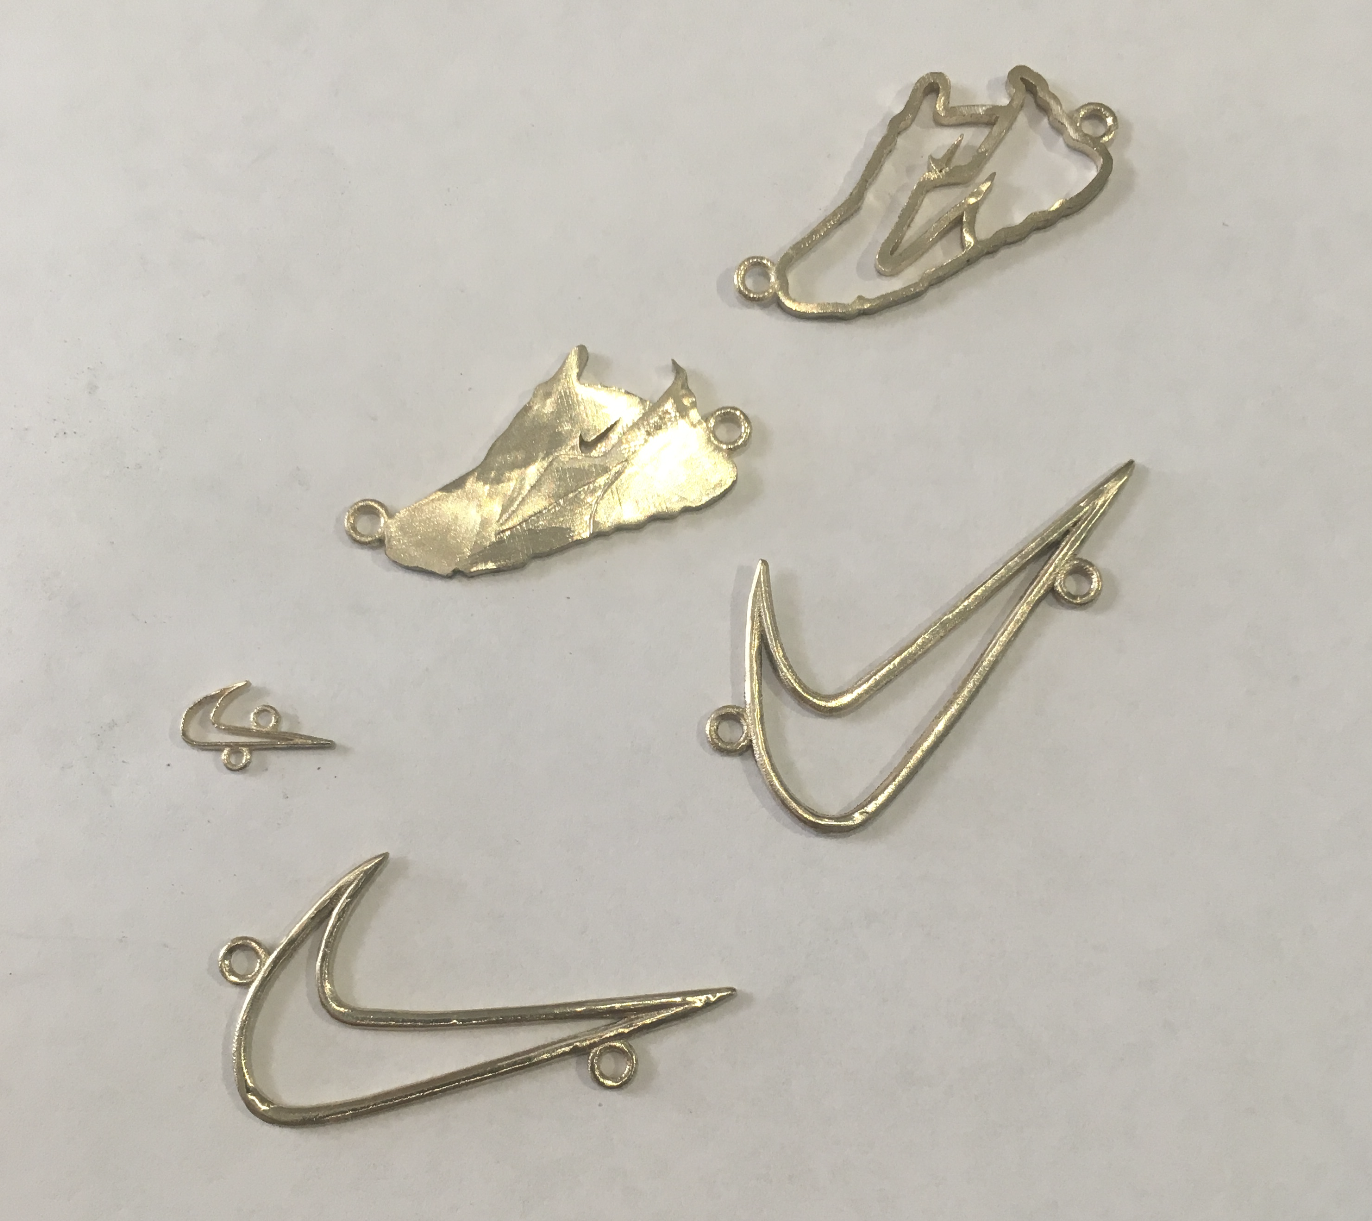 A few styles we casted in 14 kt gold, prior to polishing.